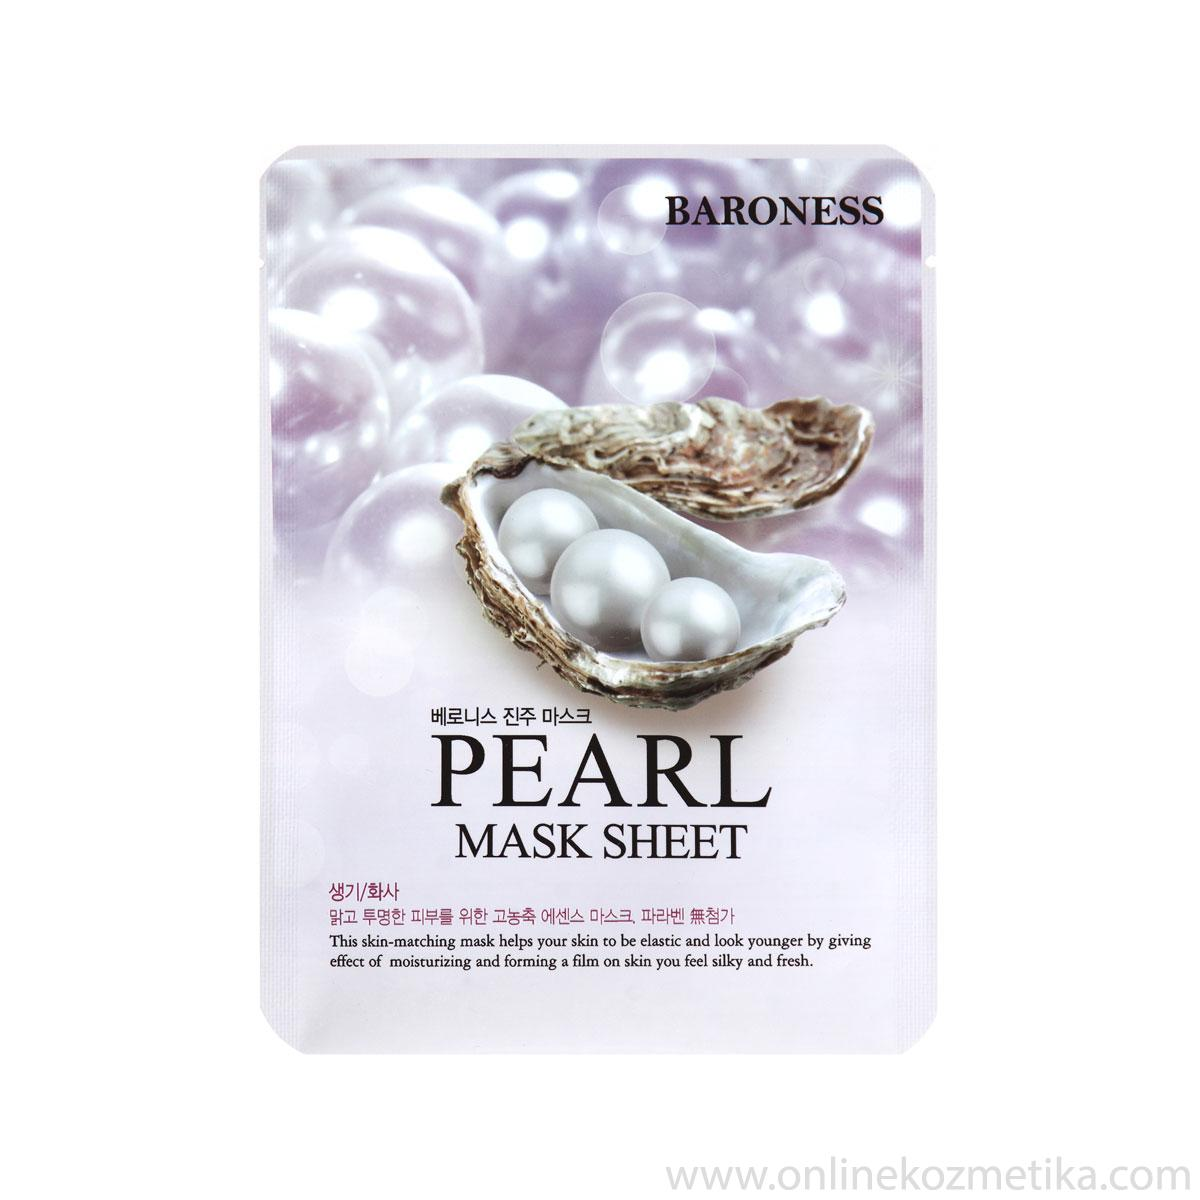 BARONESS MASK SHEET PEARL